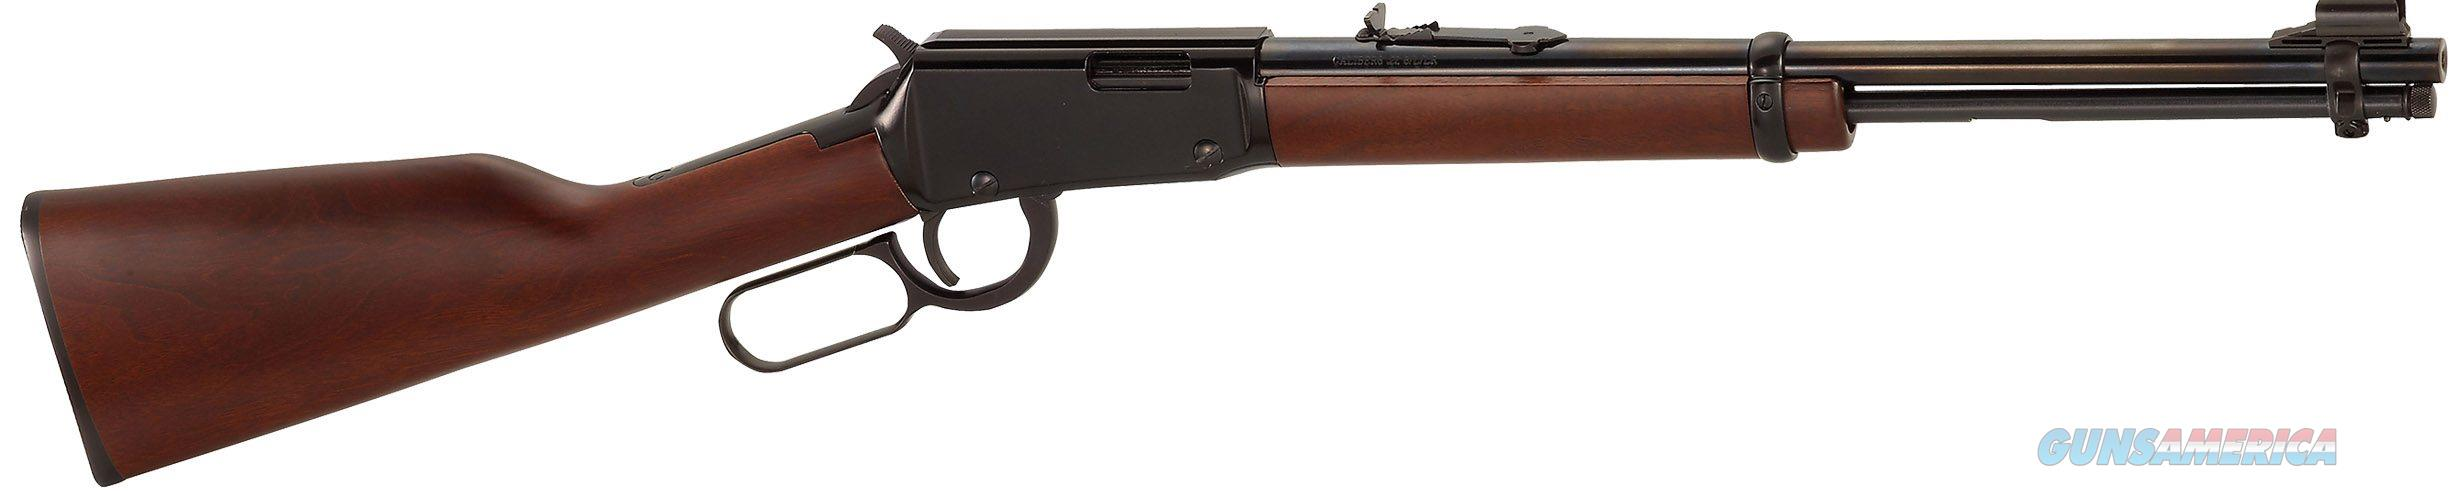 Henry Repeating Arms Youth Lever Action Rifle, .22LR, NIB  Guns > Rifles > Henry Rifle Company